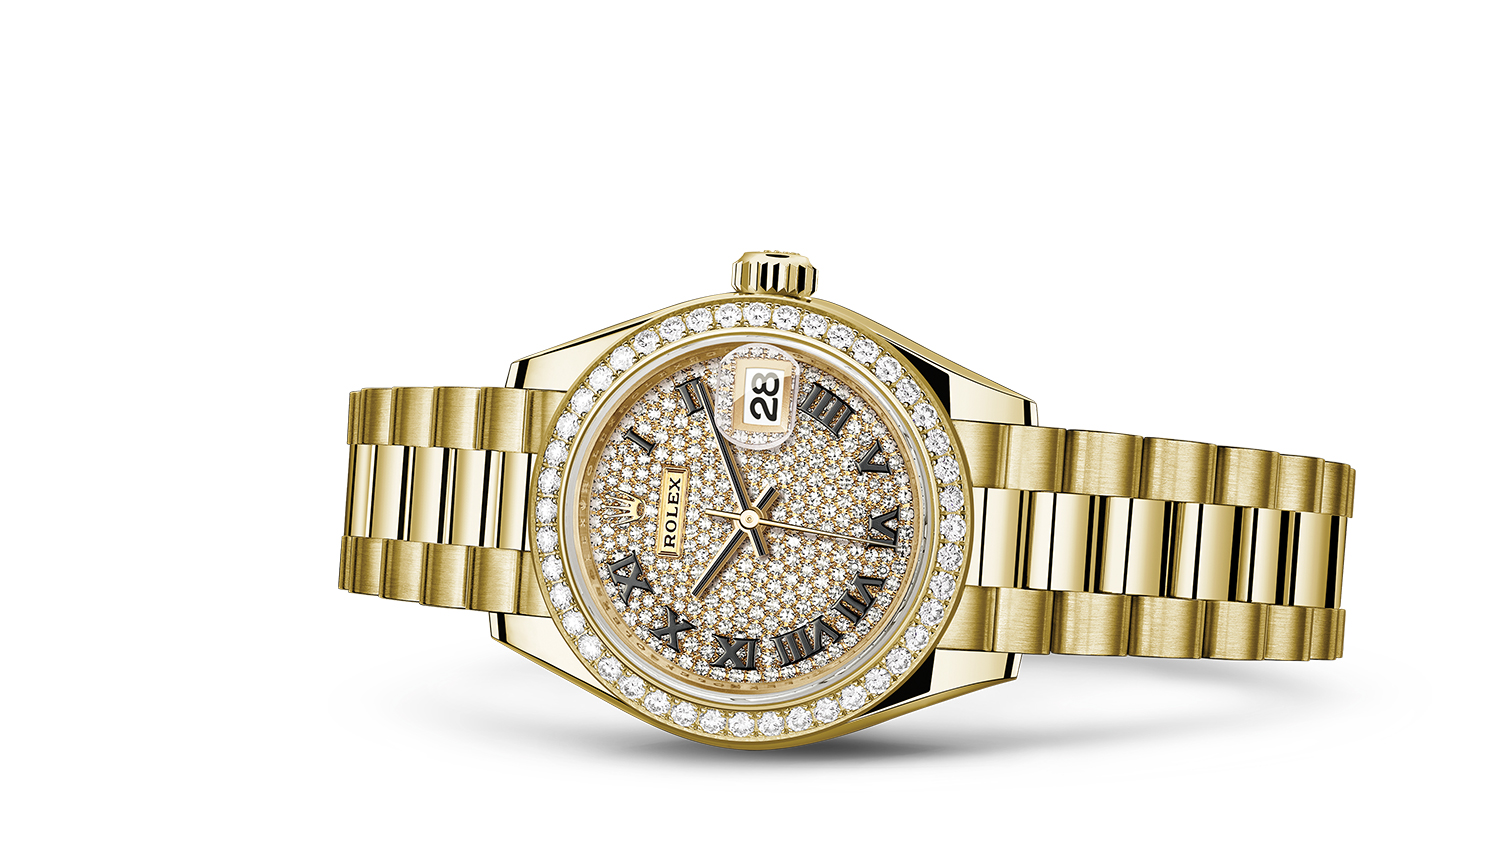 LADY-DATEJUST 28 Oyster, 28 mm, yellow gold and diamonds